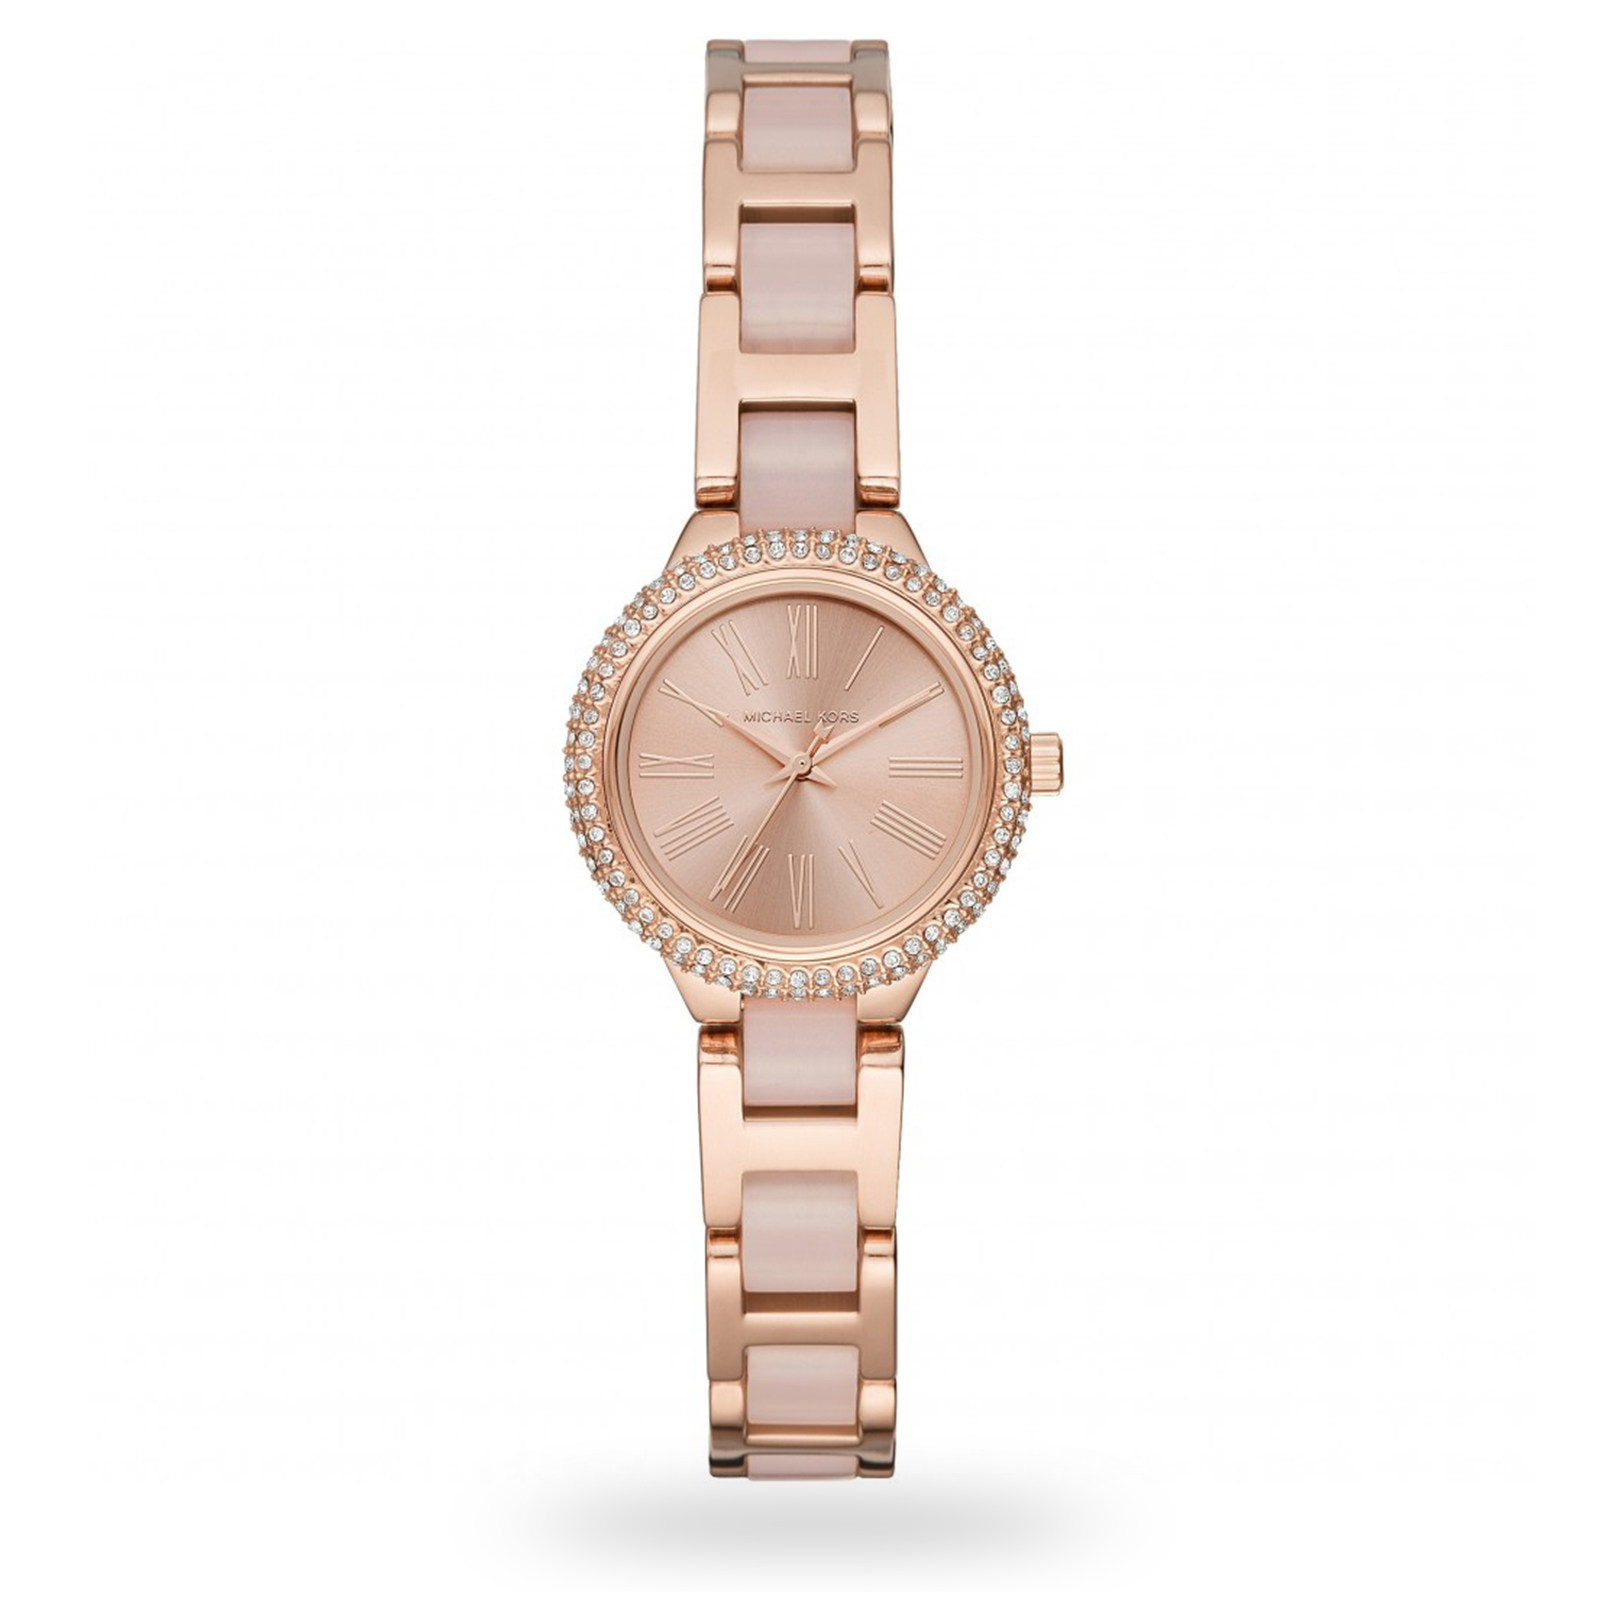 Michael Kors Rose Gold-Tone and Blush Acetate Watch